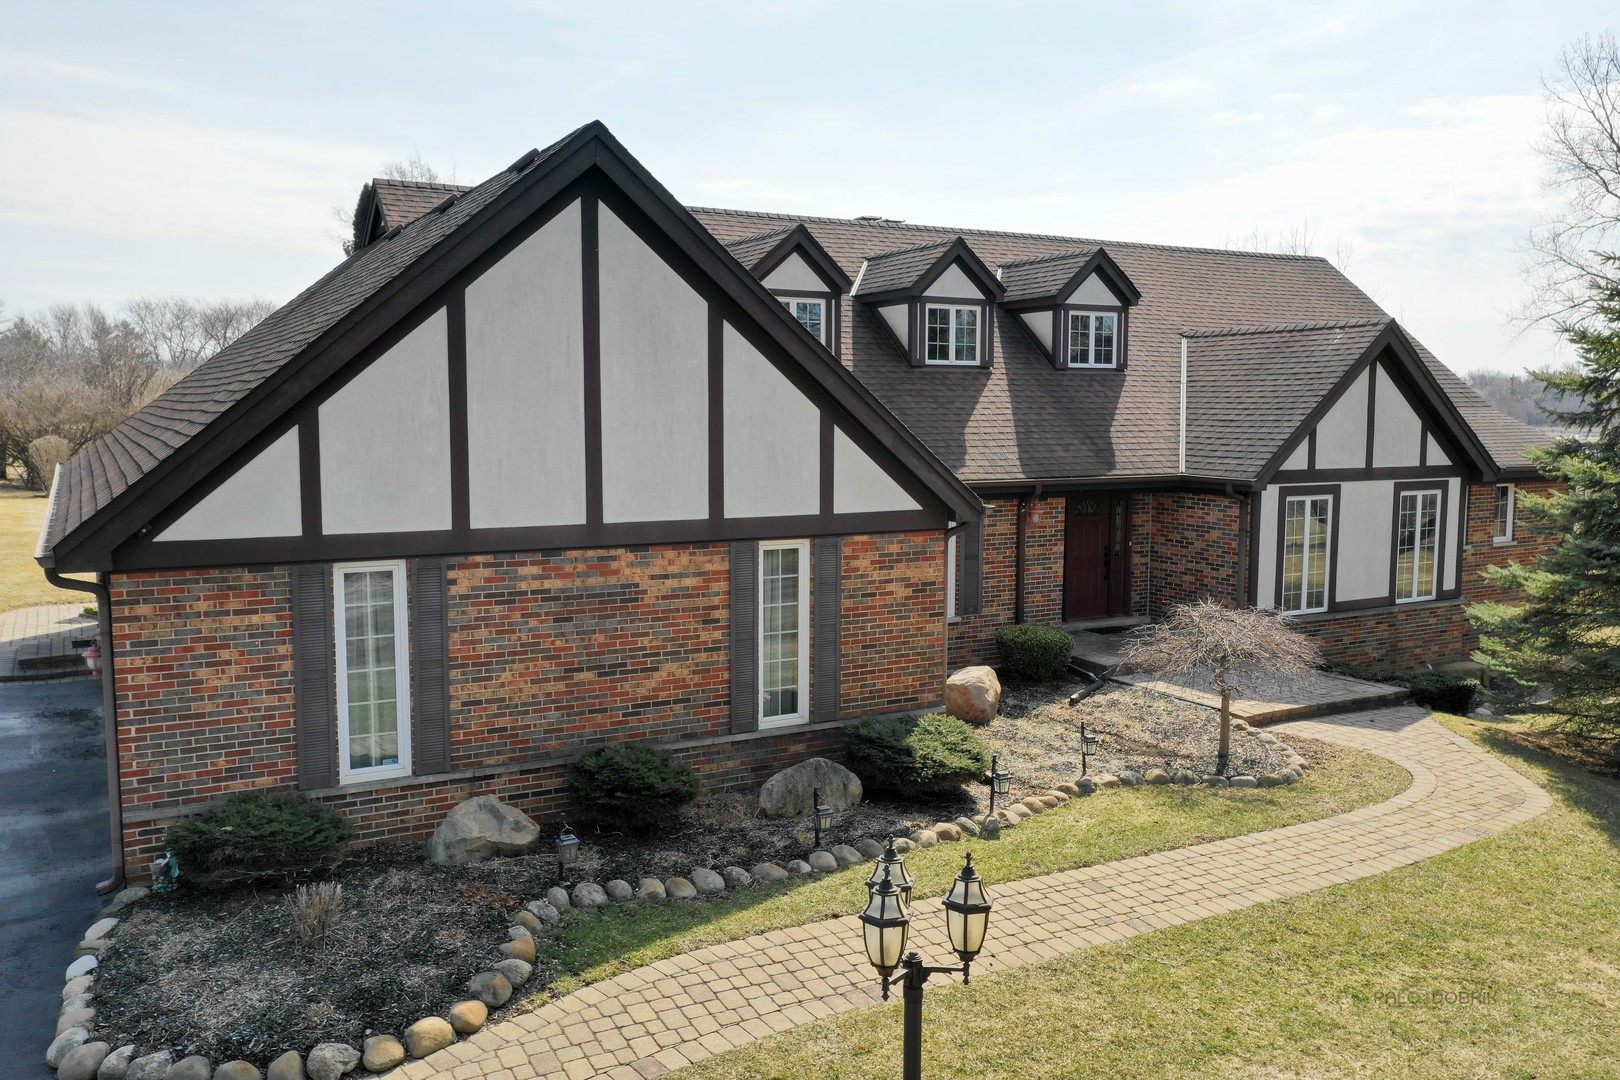 2155 COMMON RIDINGS Way, Inverness IL 60010